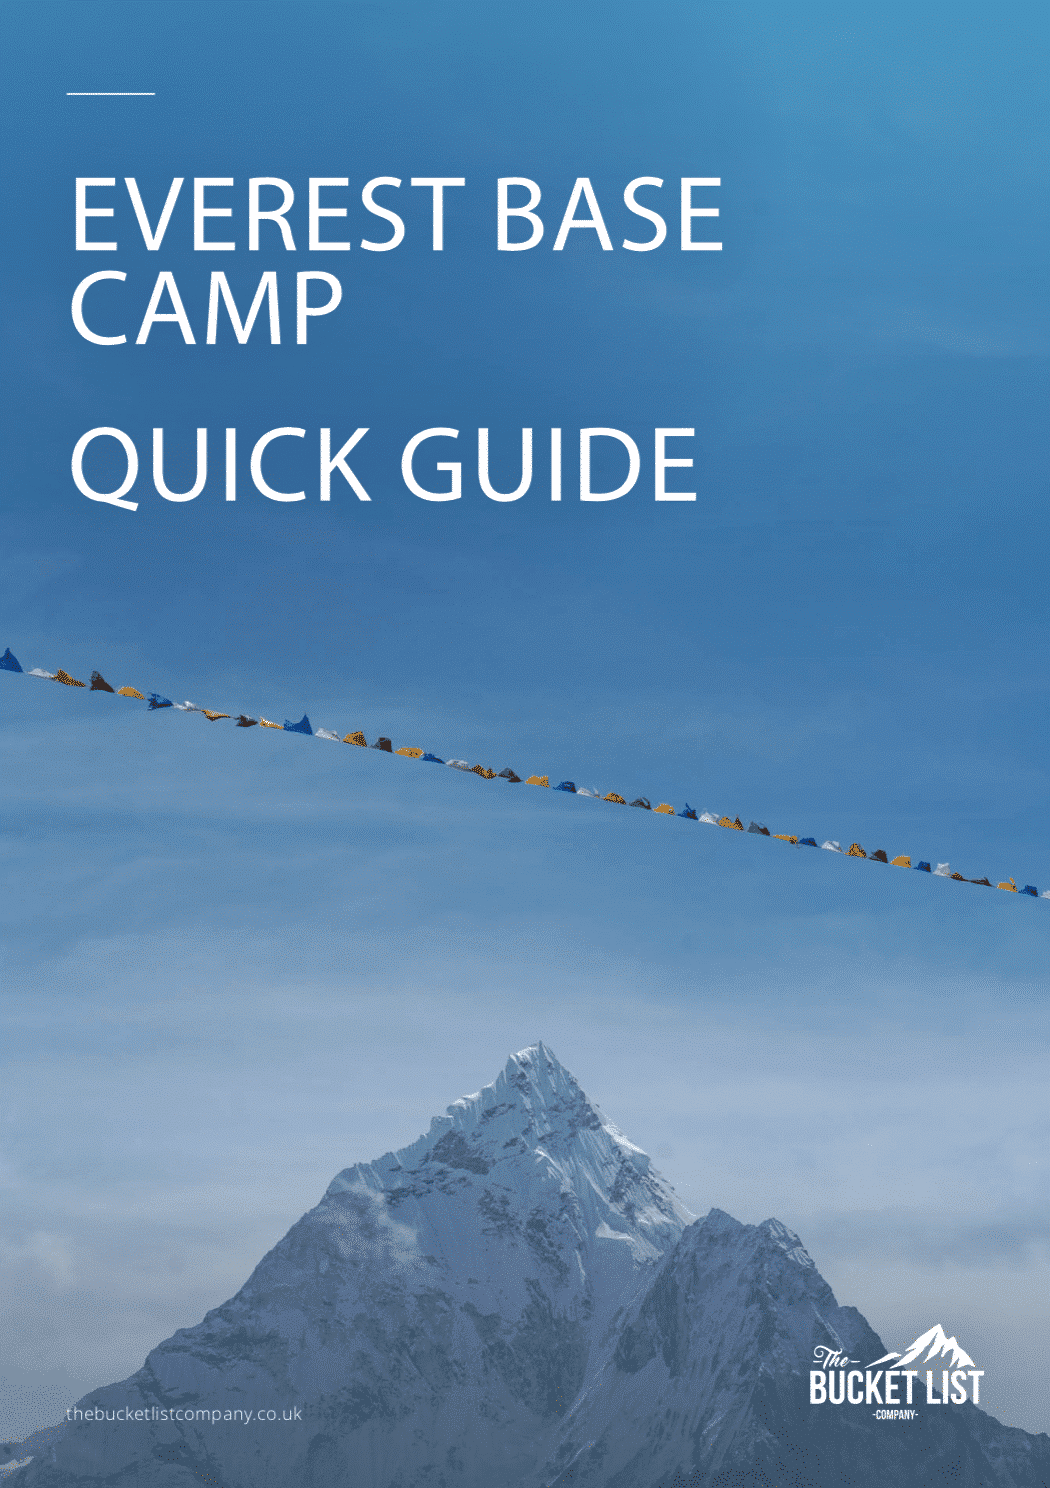 Everest Base Camp quick guide